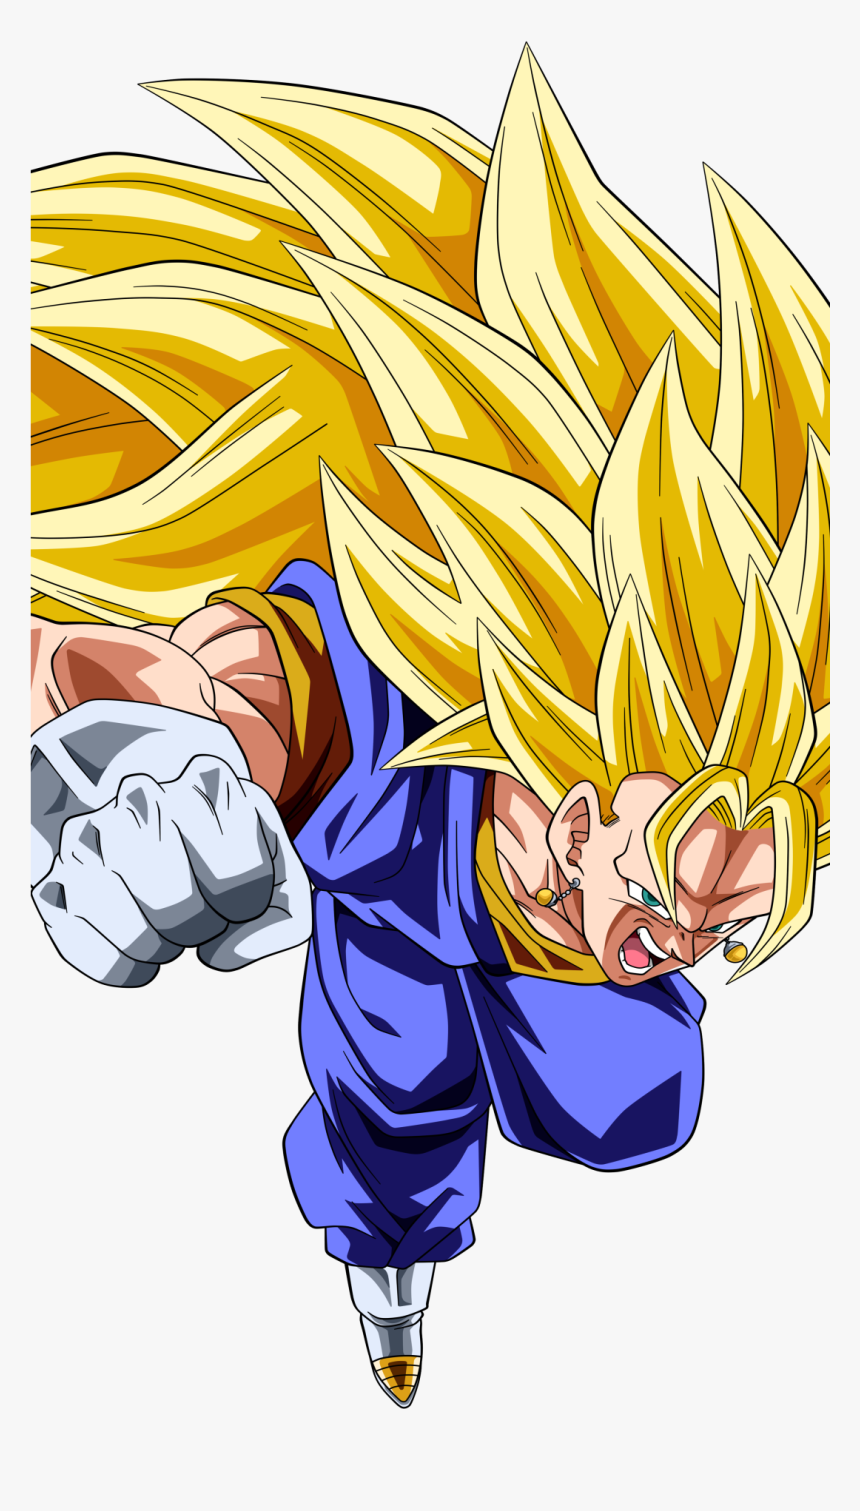 Transparent Dragon Ball Z, Hd Png Download , Png Download - Dragon Ball Z Png, Png Download, Free Download